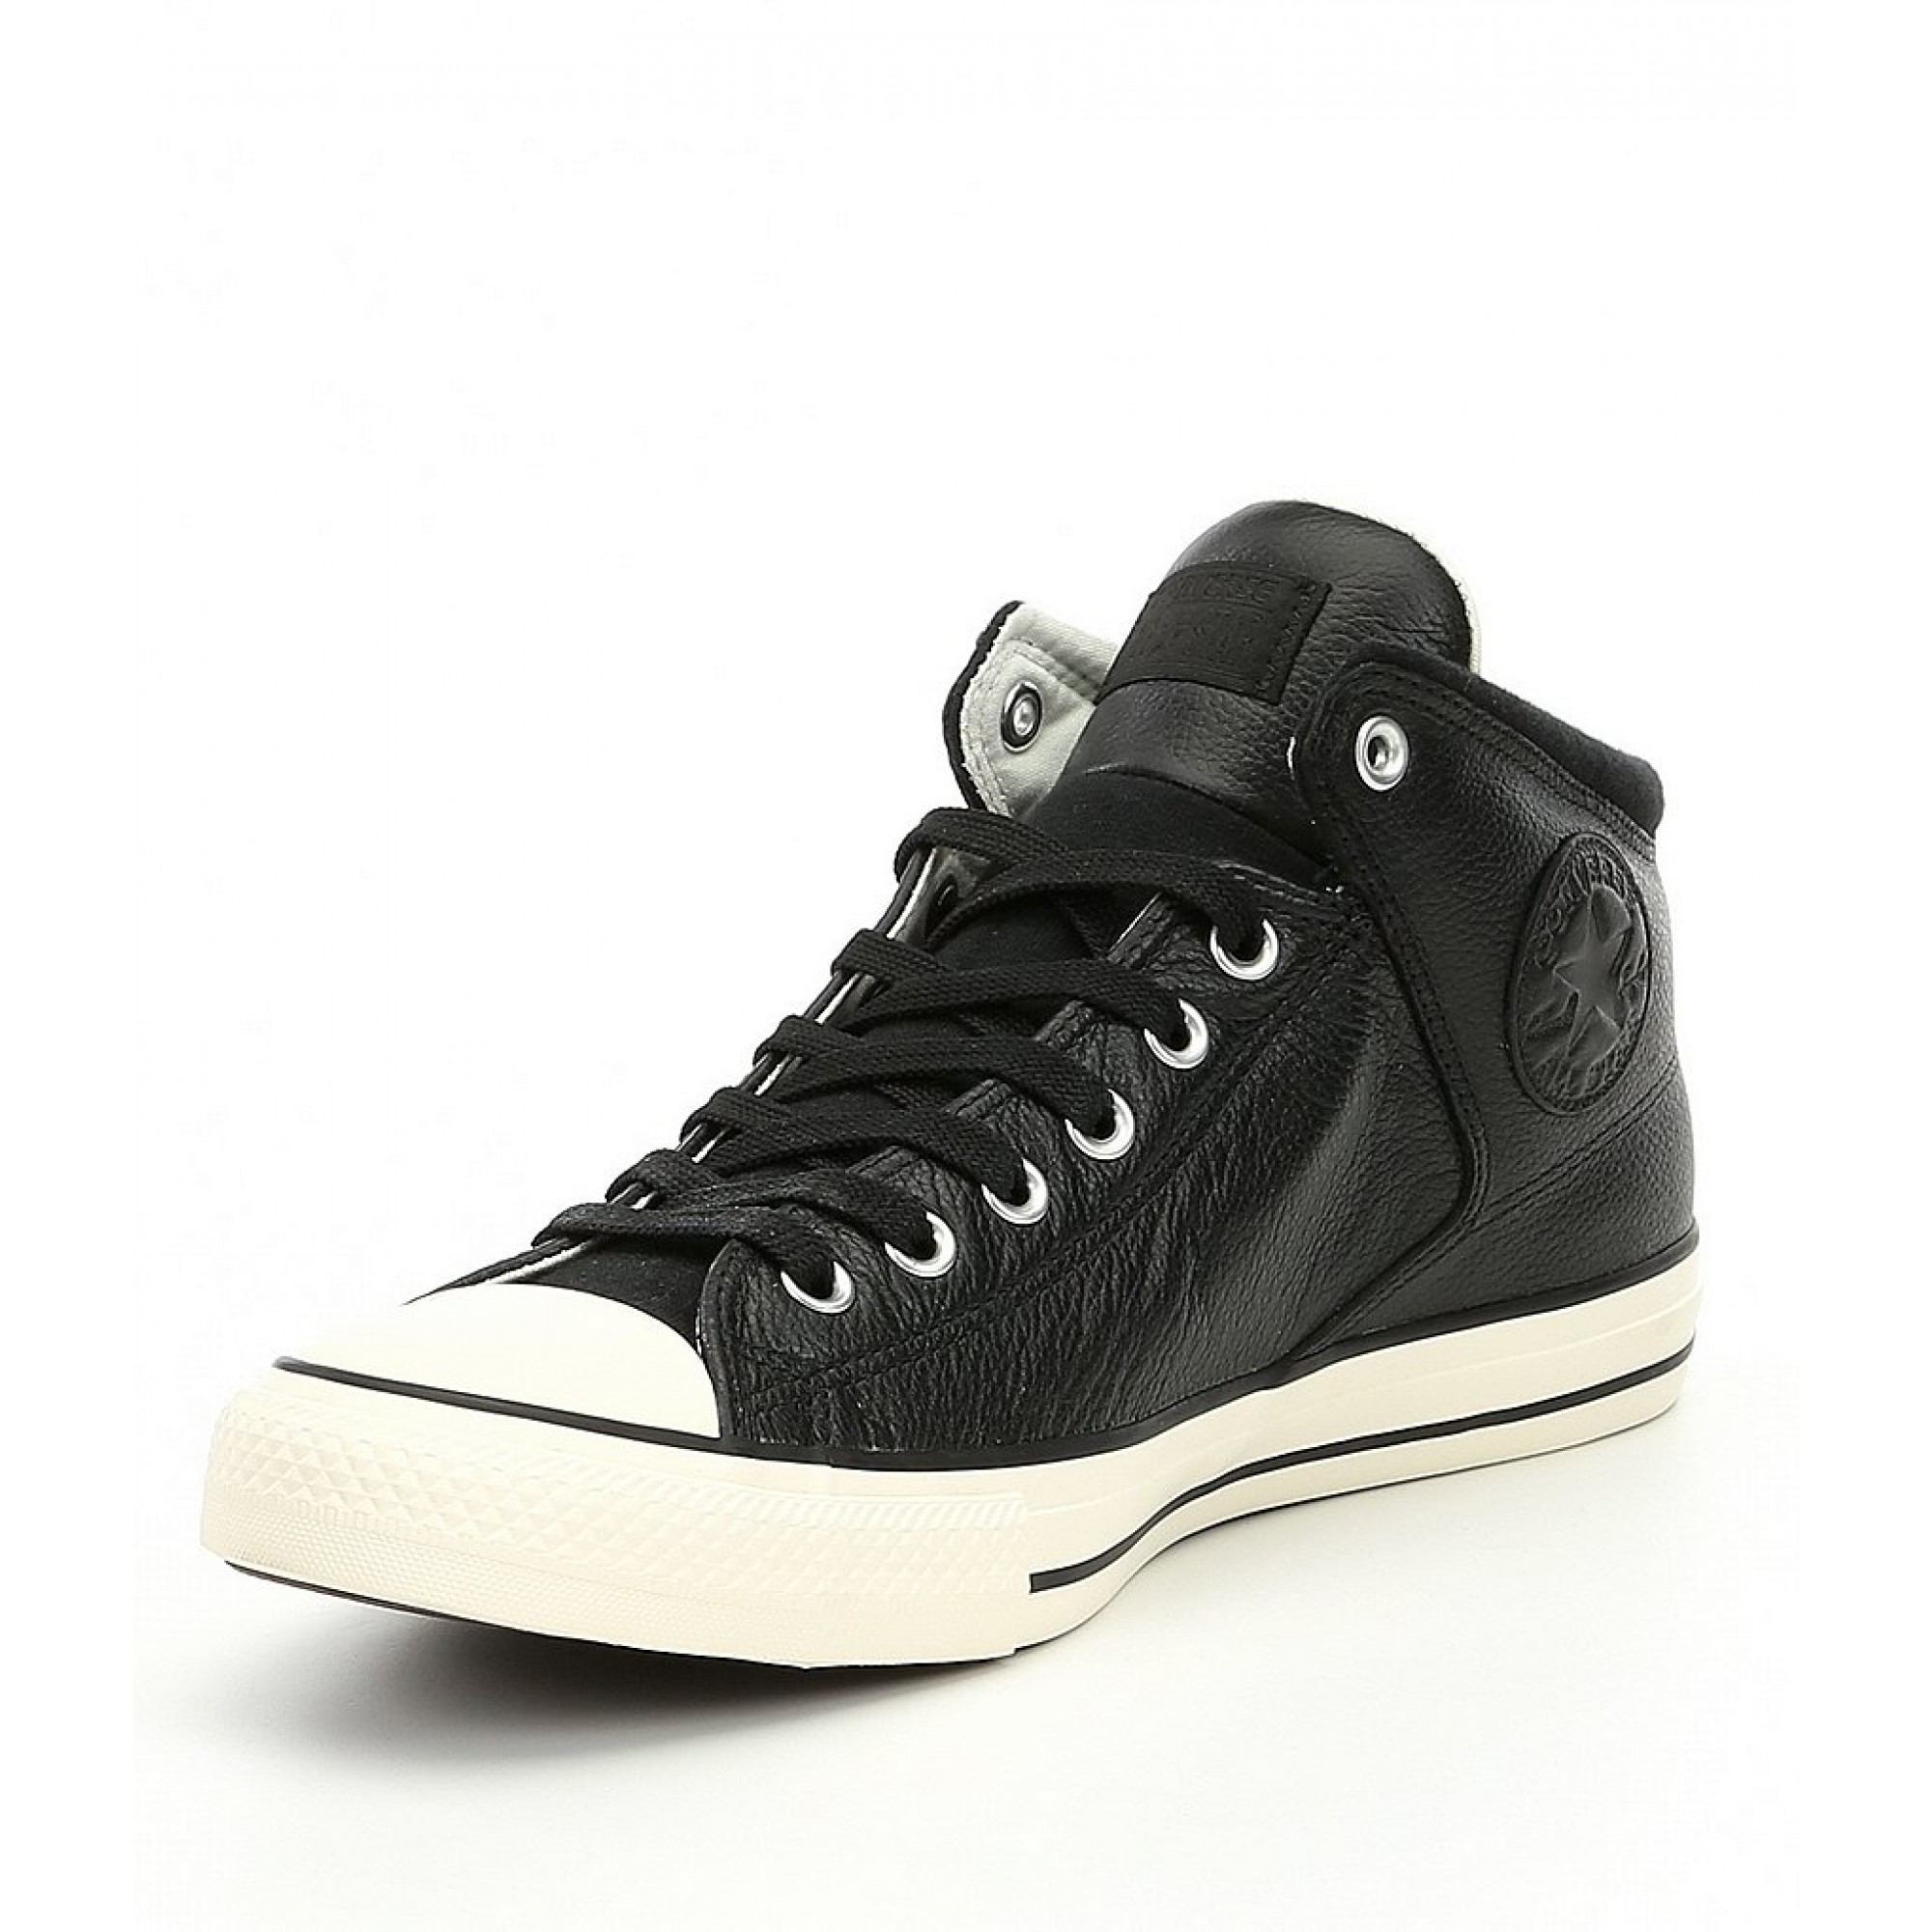 Venue Store CONVERSE Chuck Taylor All Star High Street Leather Hi Shoe -  Black Black Egret Wanted Streetwear Free Delivery Over  100 7773adae0